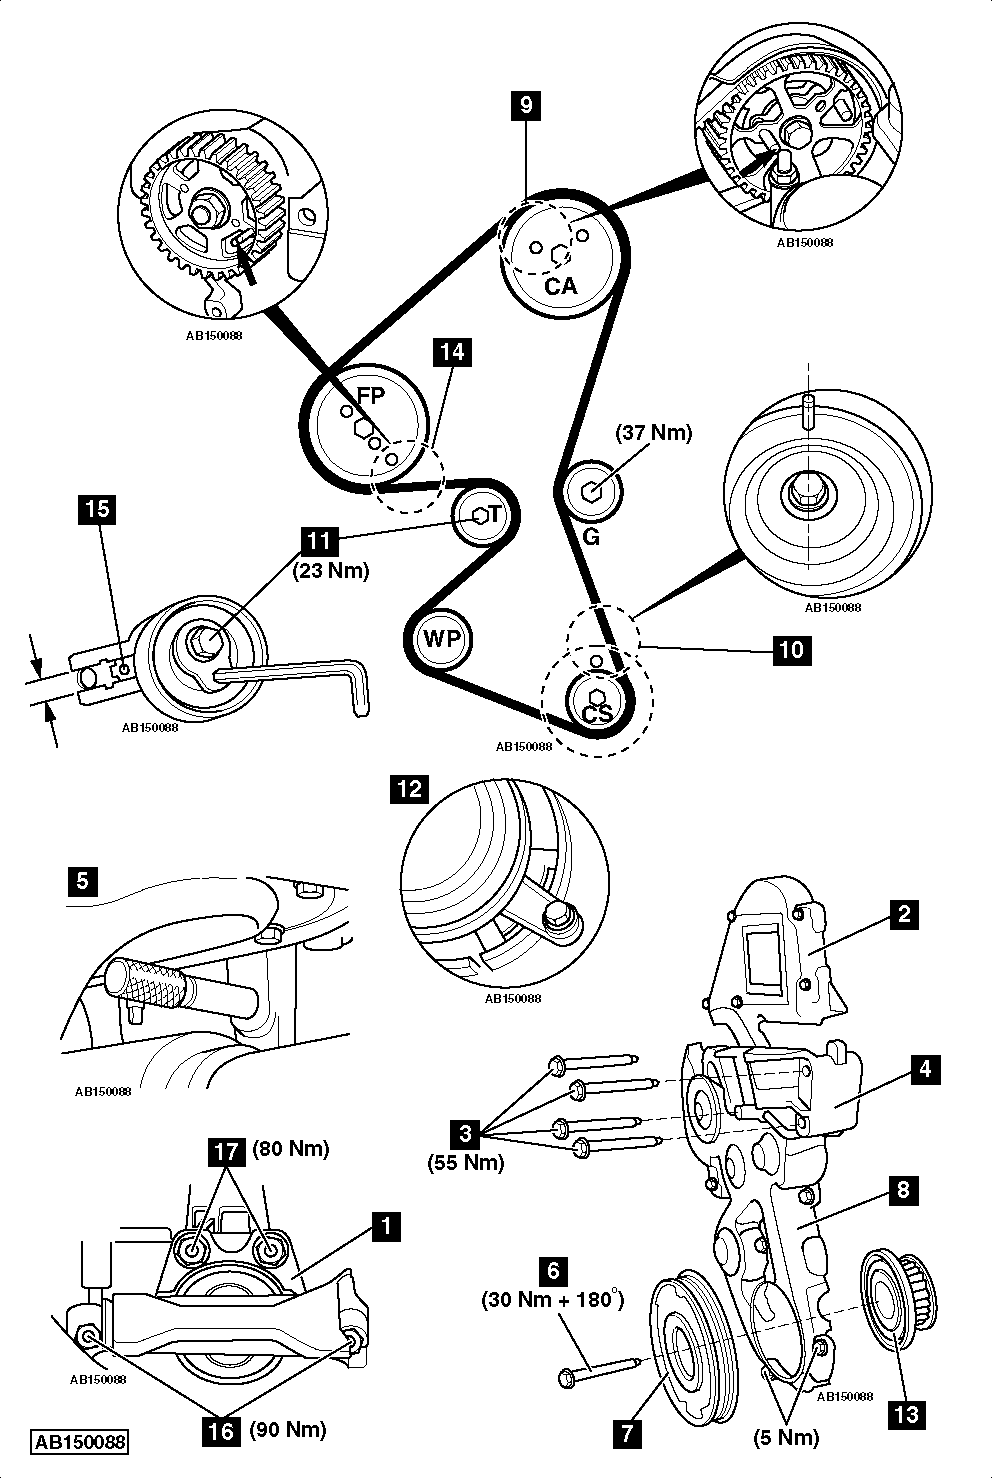 saab 900 2 0 engine diagram get free image about wiring